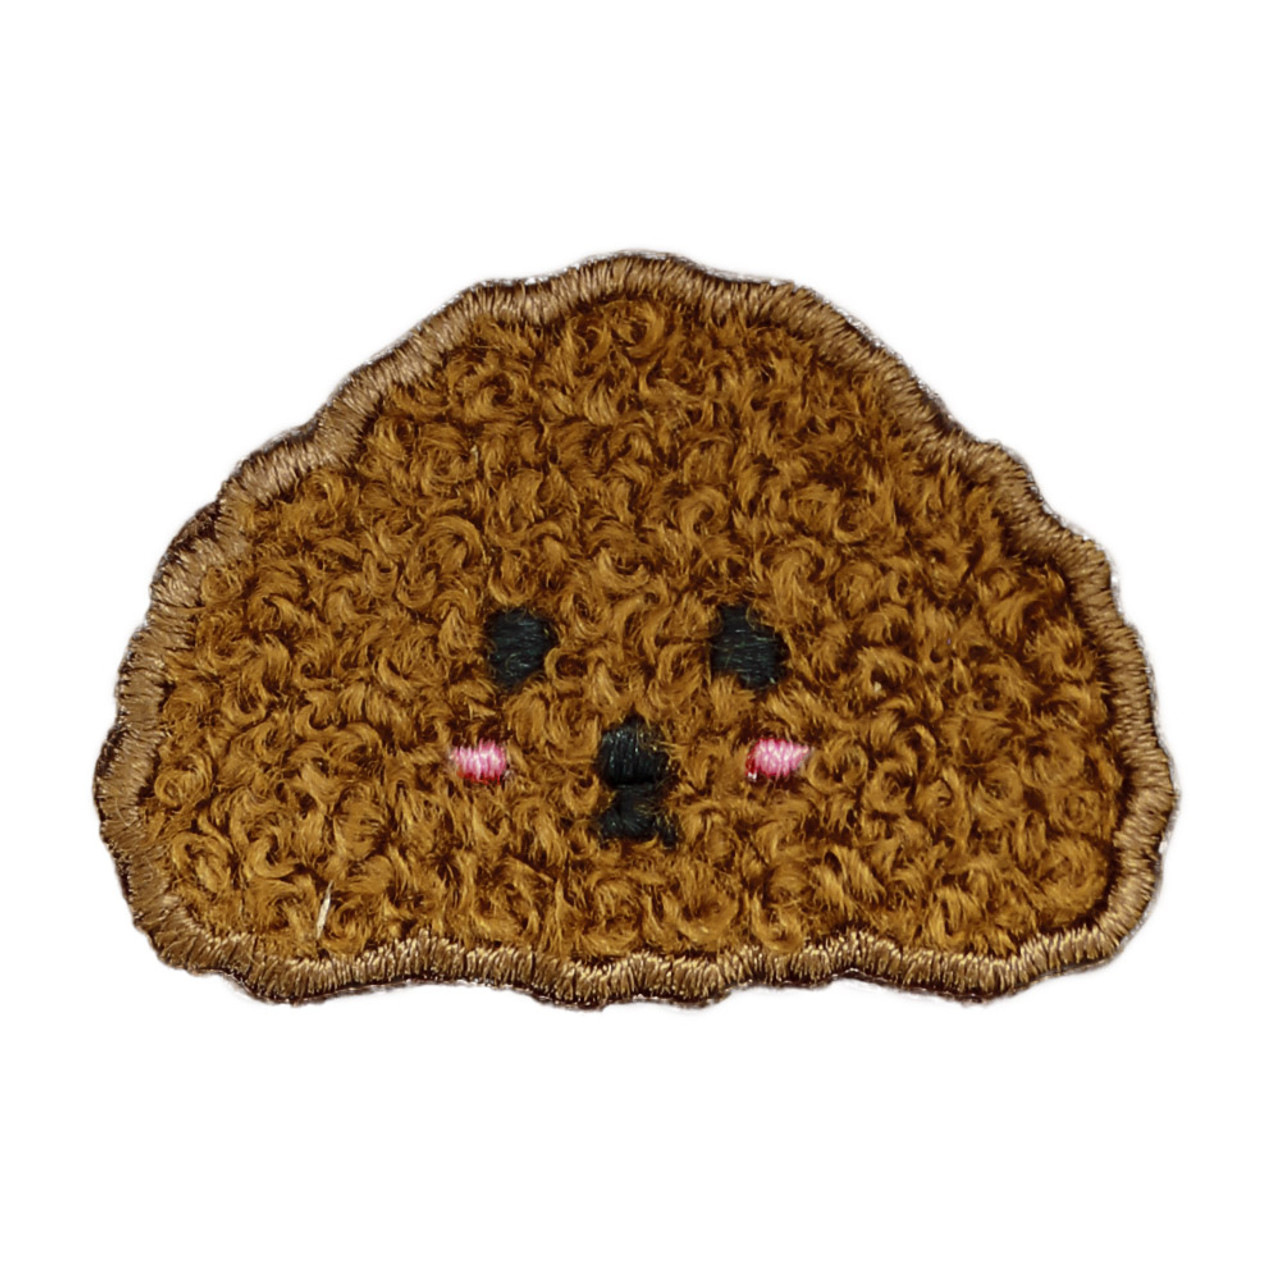 Kawaii Dark brown Poodle Dog Iron On Patch ( Front view )